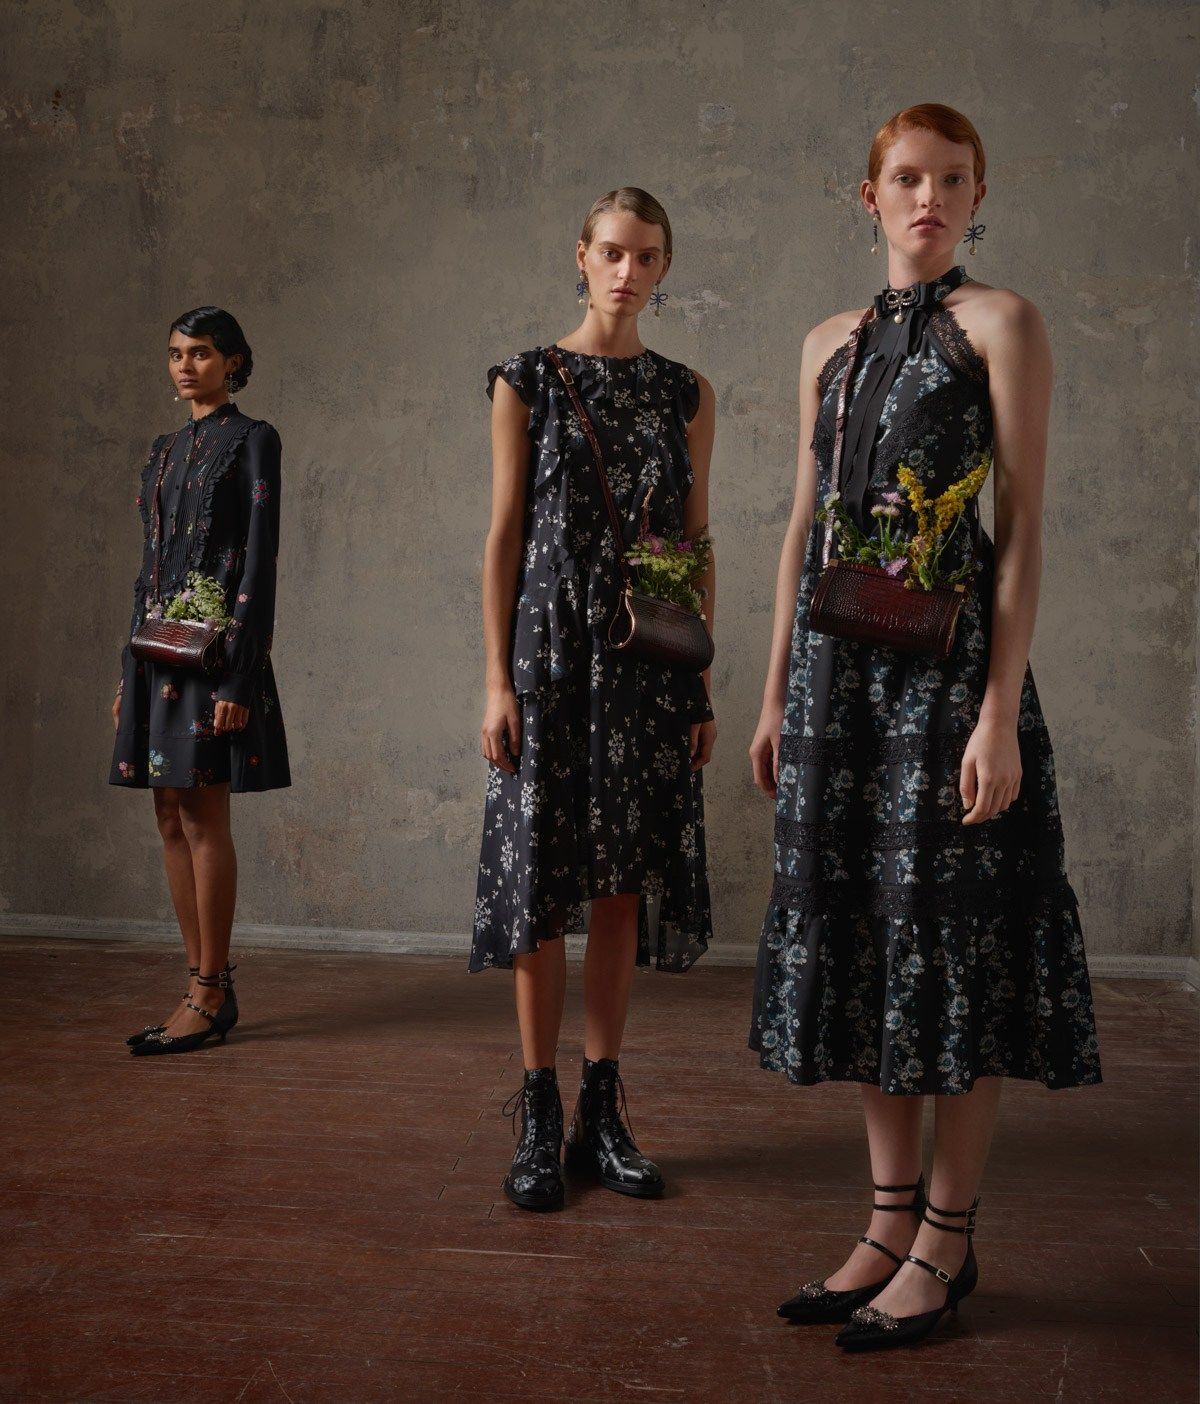 3e5db1812e6f4 Are You Excited For Erdem x H&M? #ErdemxHM | Fashion | Erdem, H&m ...